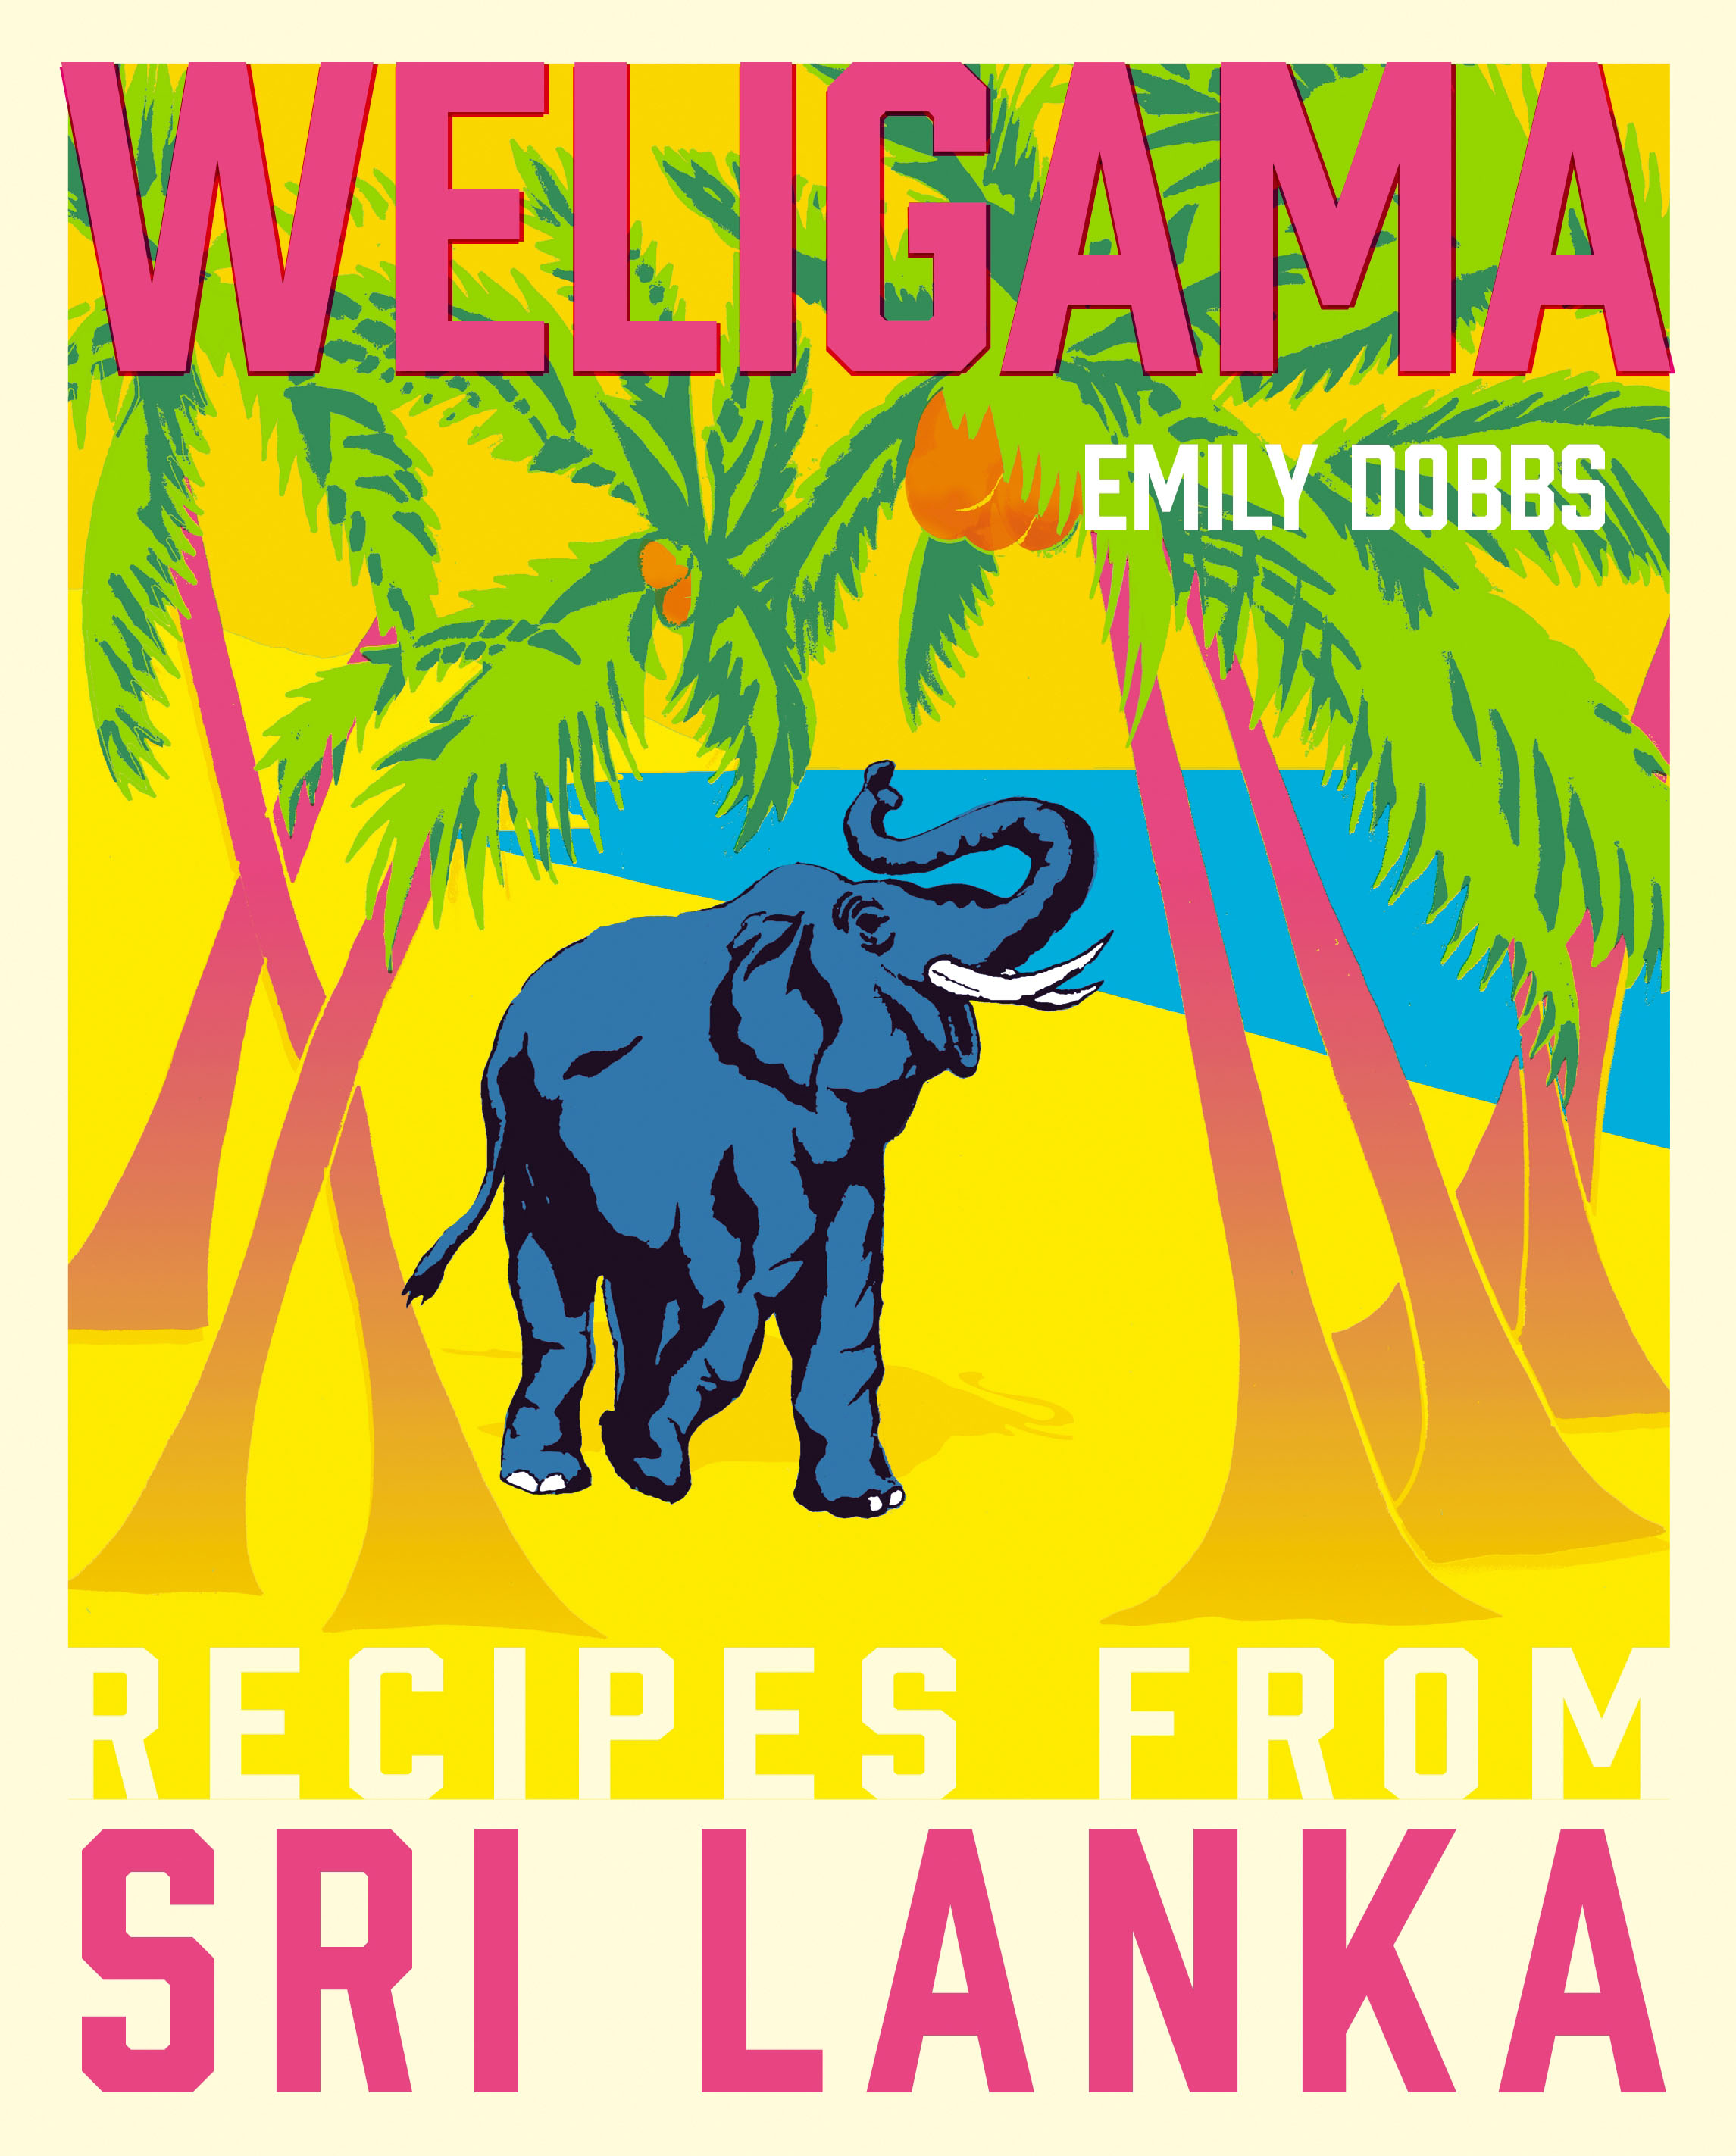 Weilgama front cover.jpg